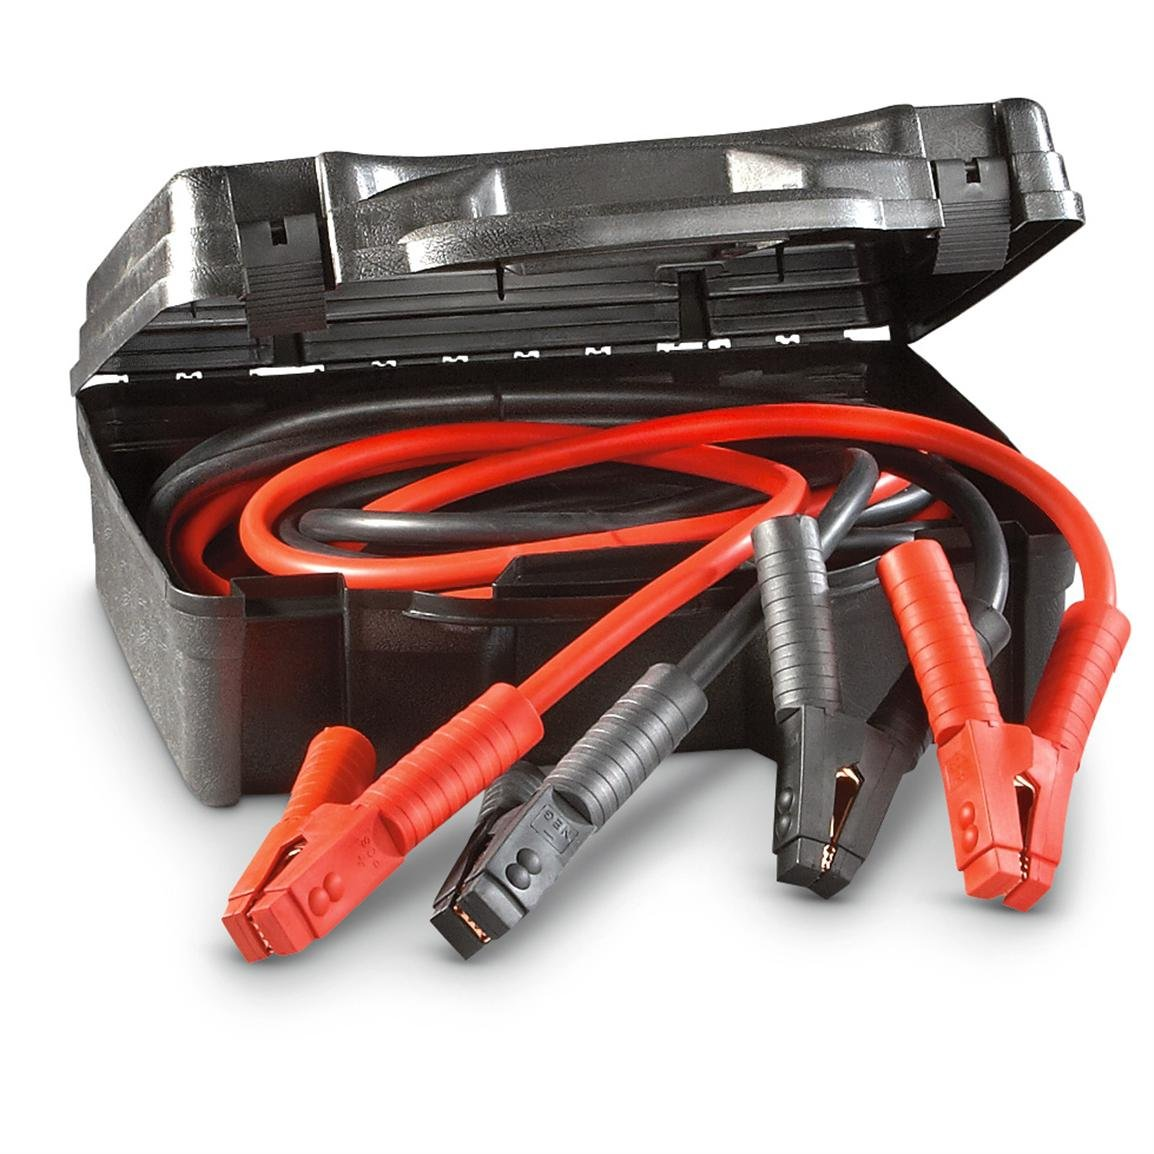 Jumper Cables, Car Battery Charger - Heavy Duty And Durable Booster Cable, 1 Gauge 600 Amp Clamp And Cables, 25 Feet Long, With A Hard Case - By Katzco Kayco USA kz-16640